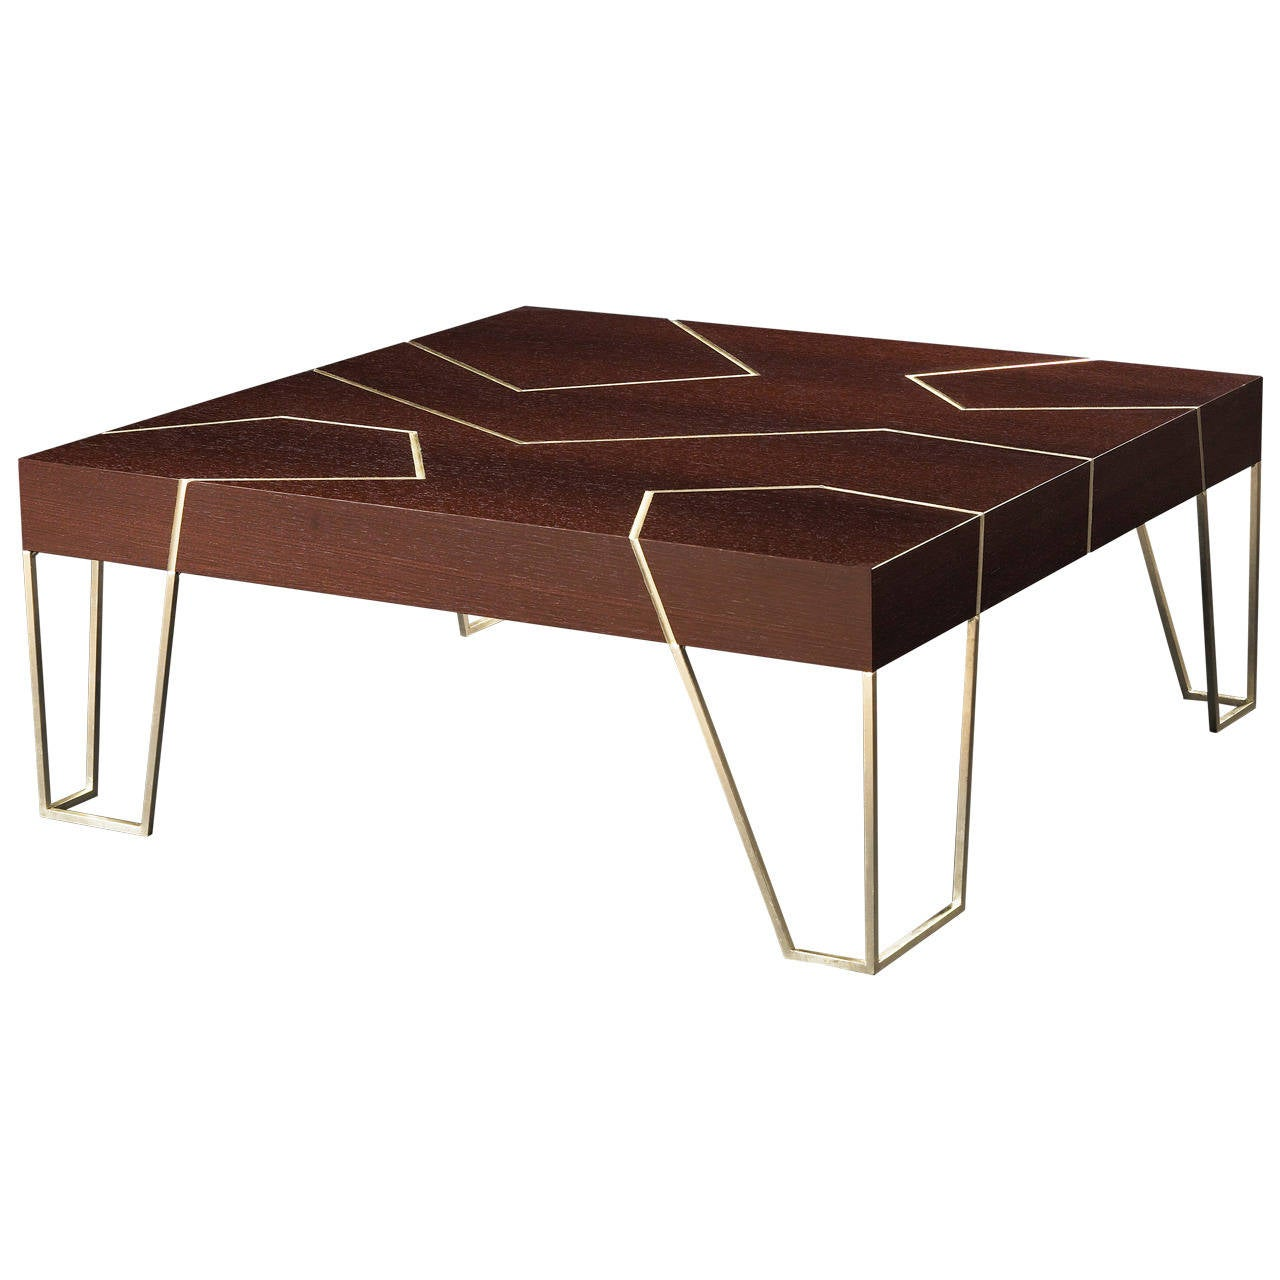 Zanzibar Coffee Table By Elisabeth Garouste And Mattia Bonetti For Sale At 1s